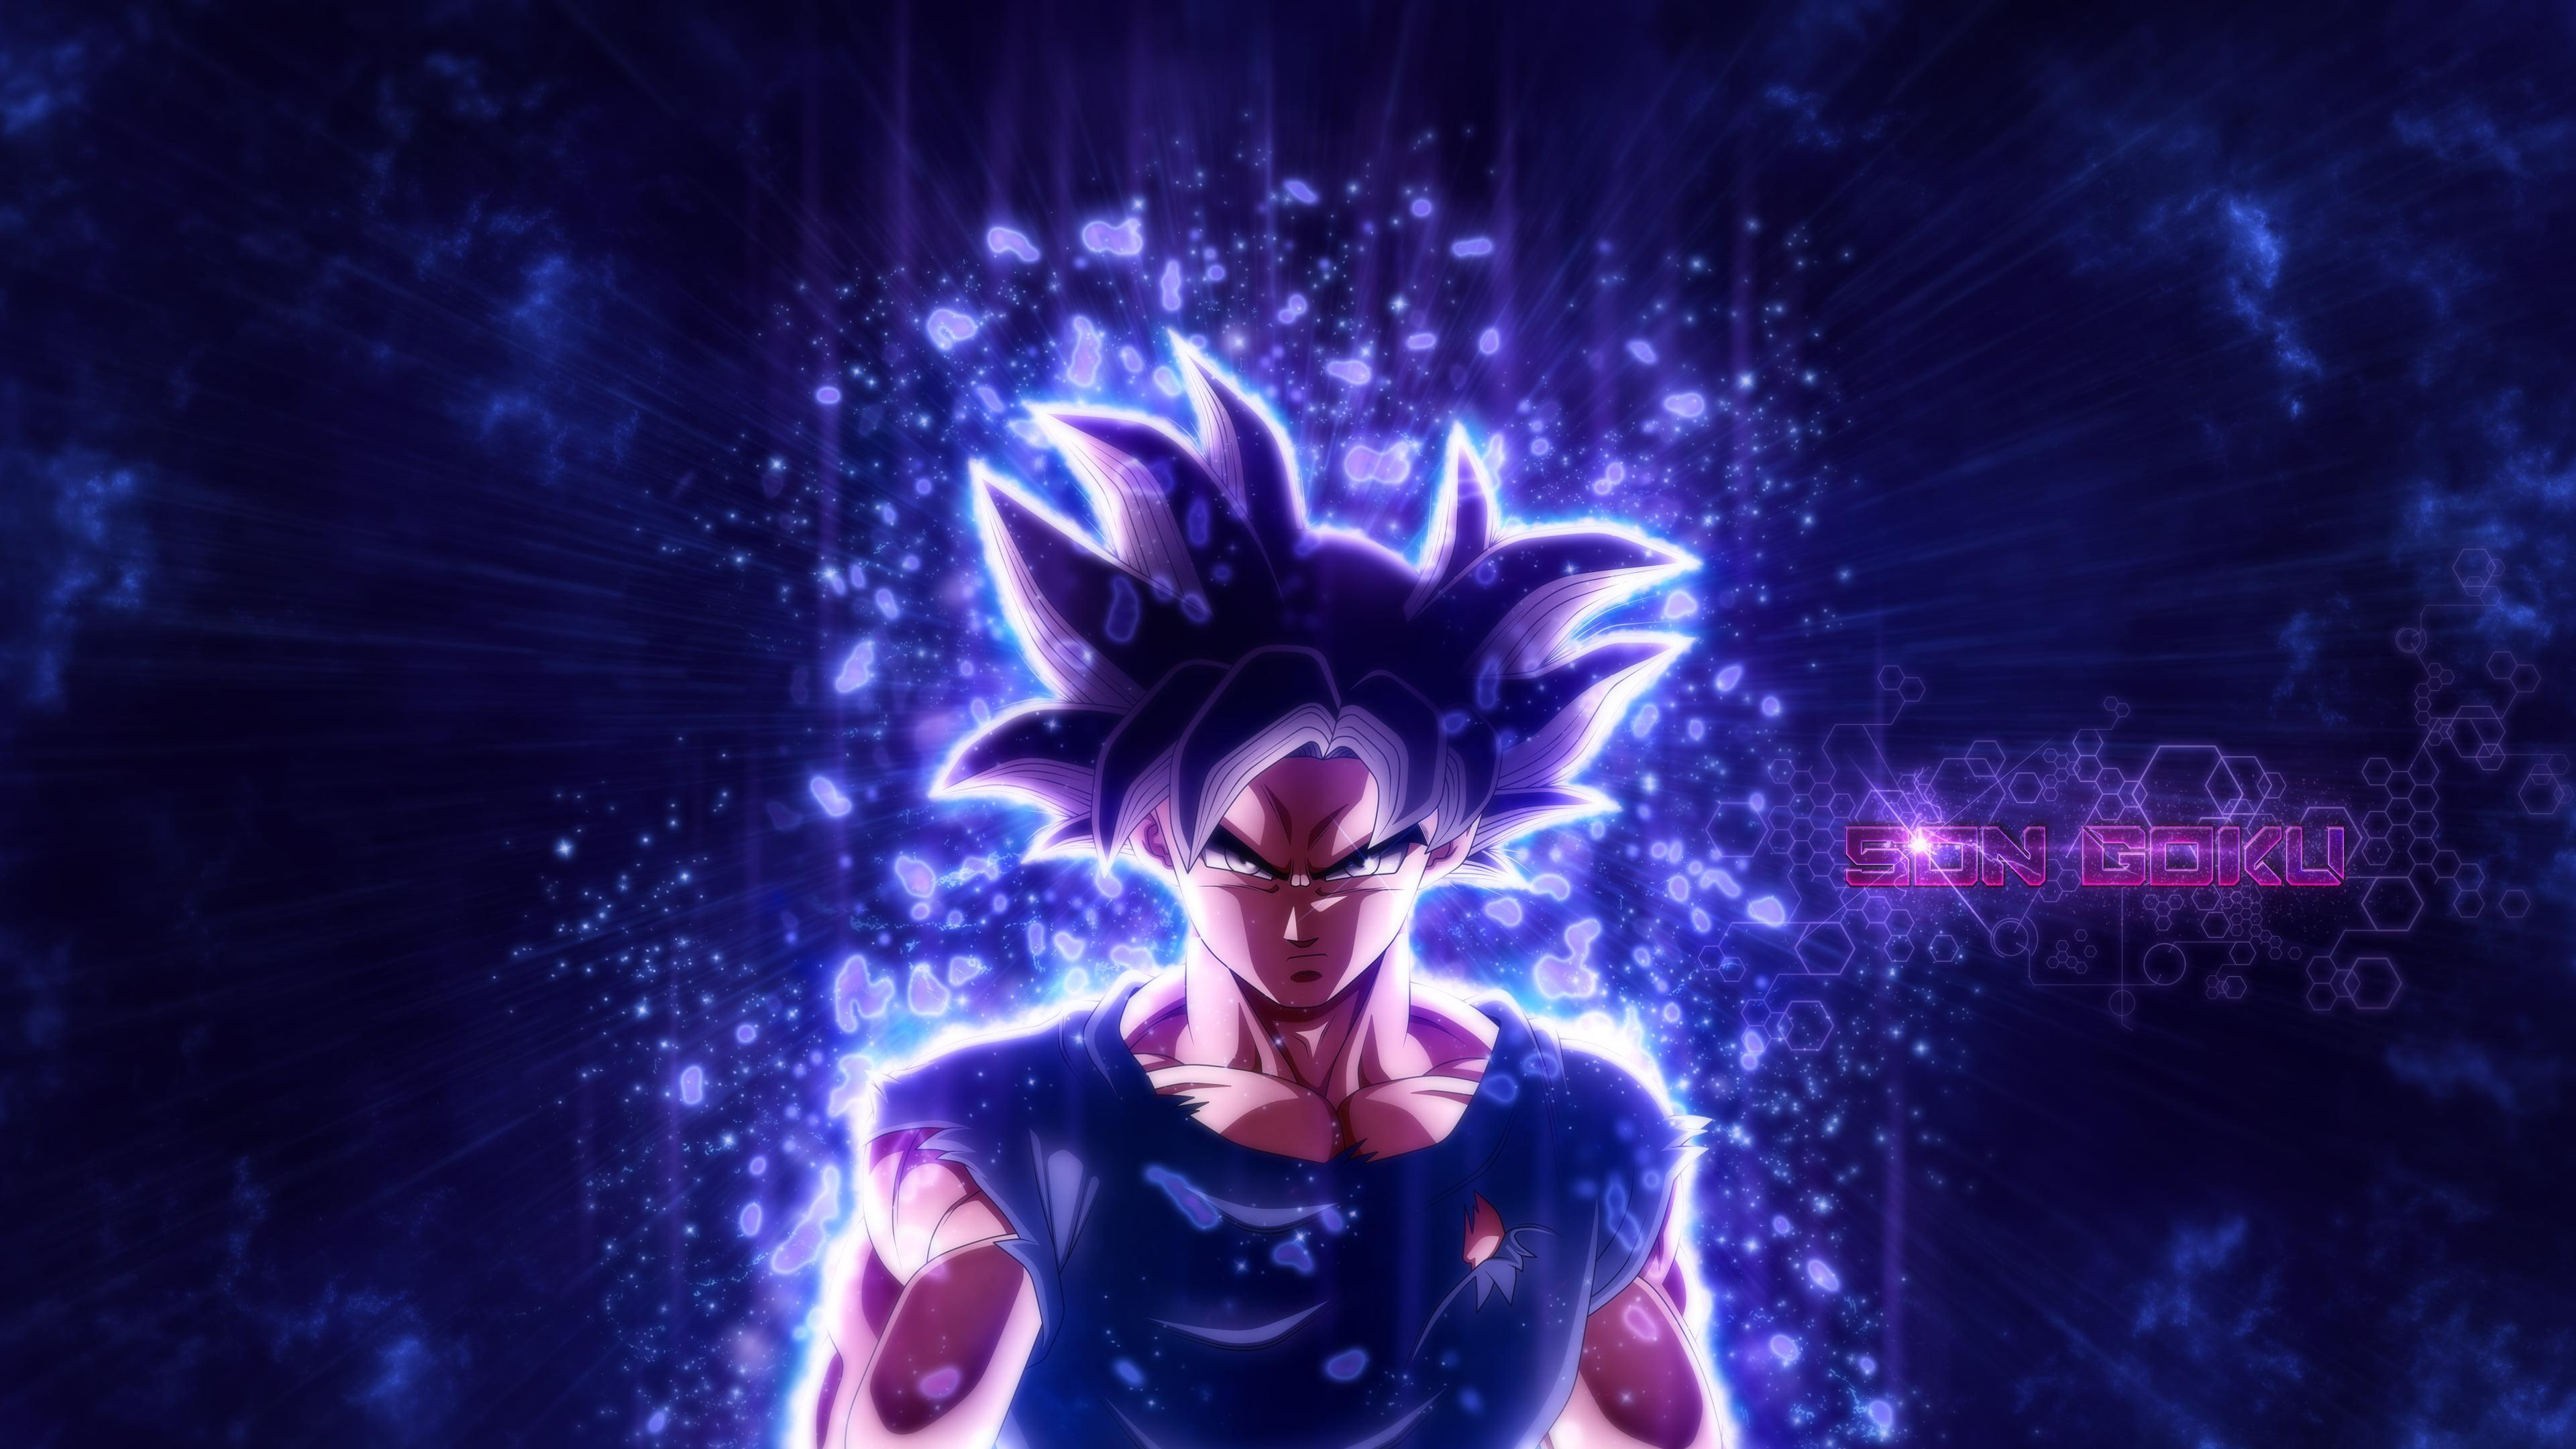 Goku Wallpaper Goku Dragon Ball Wallpaper Gif For